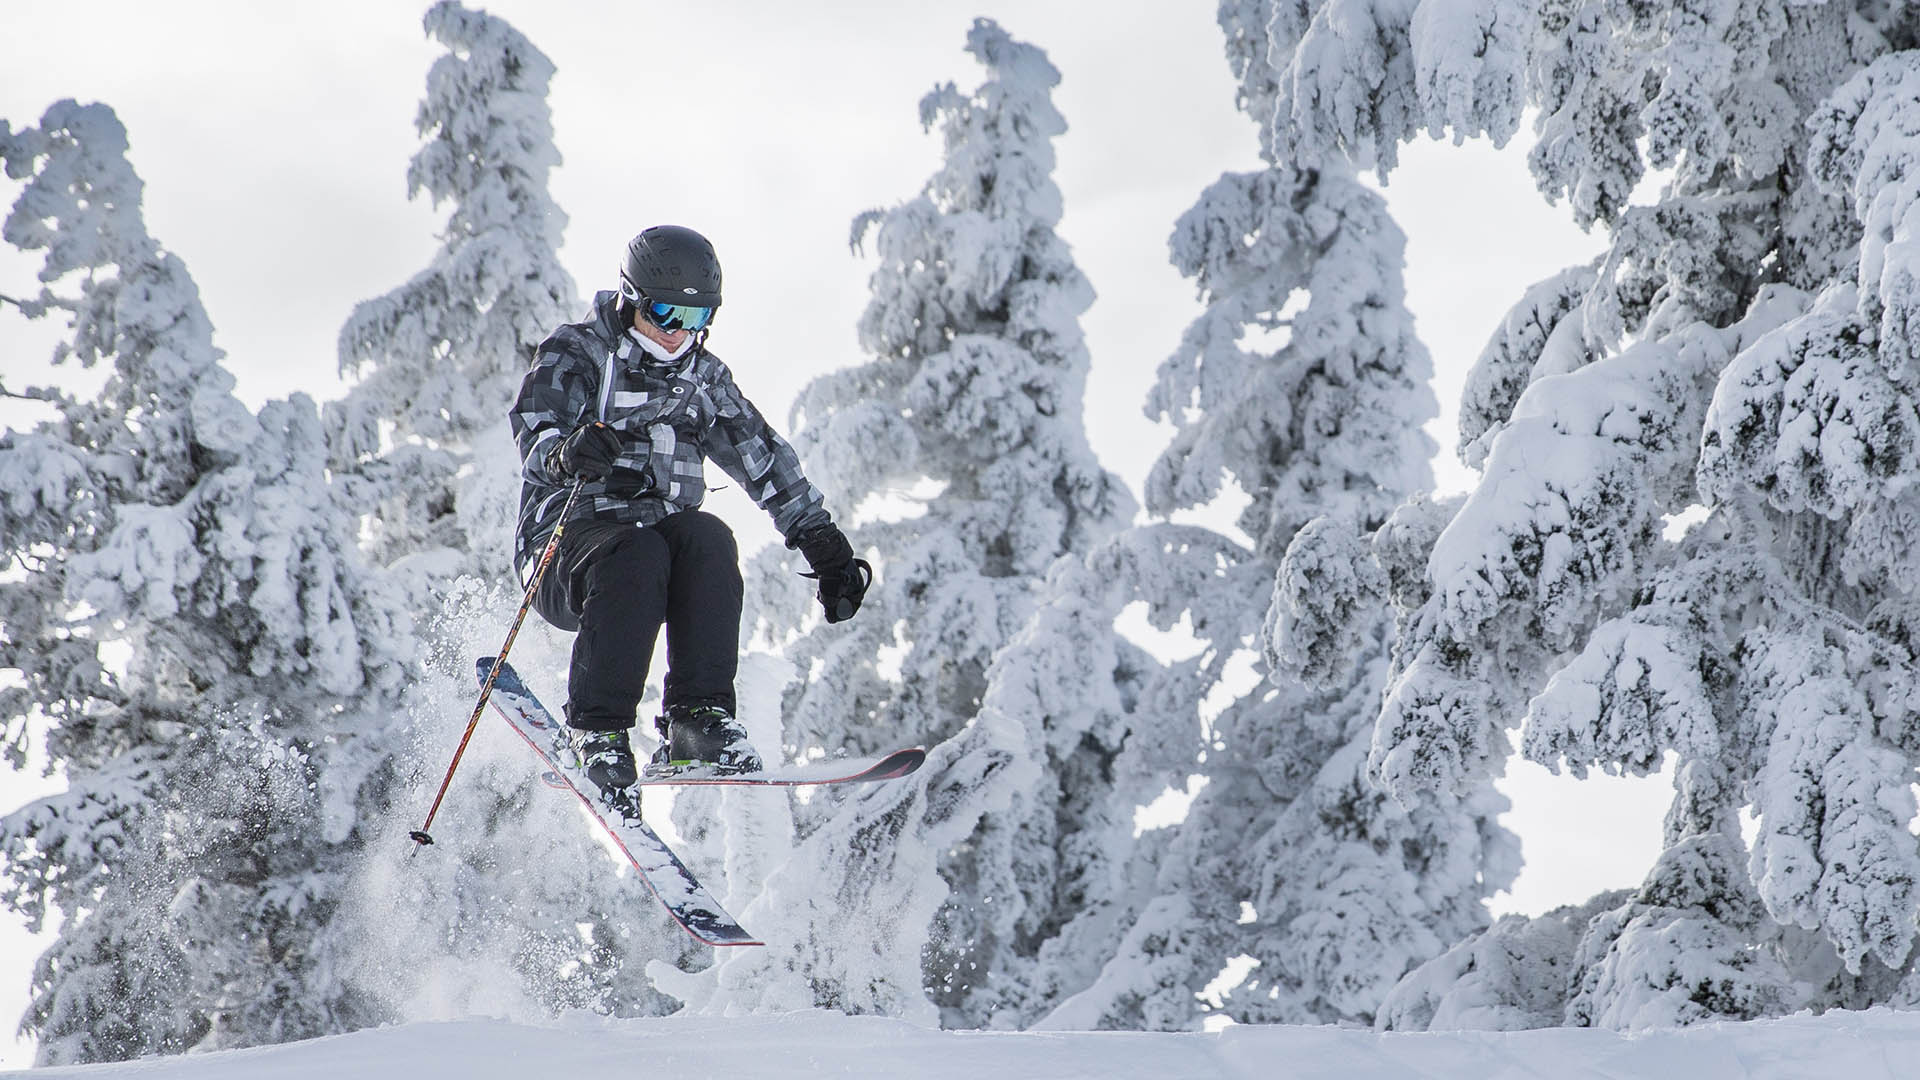 Skiing at Mt. Bachelor - Things to do in Bend March 2019